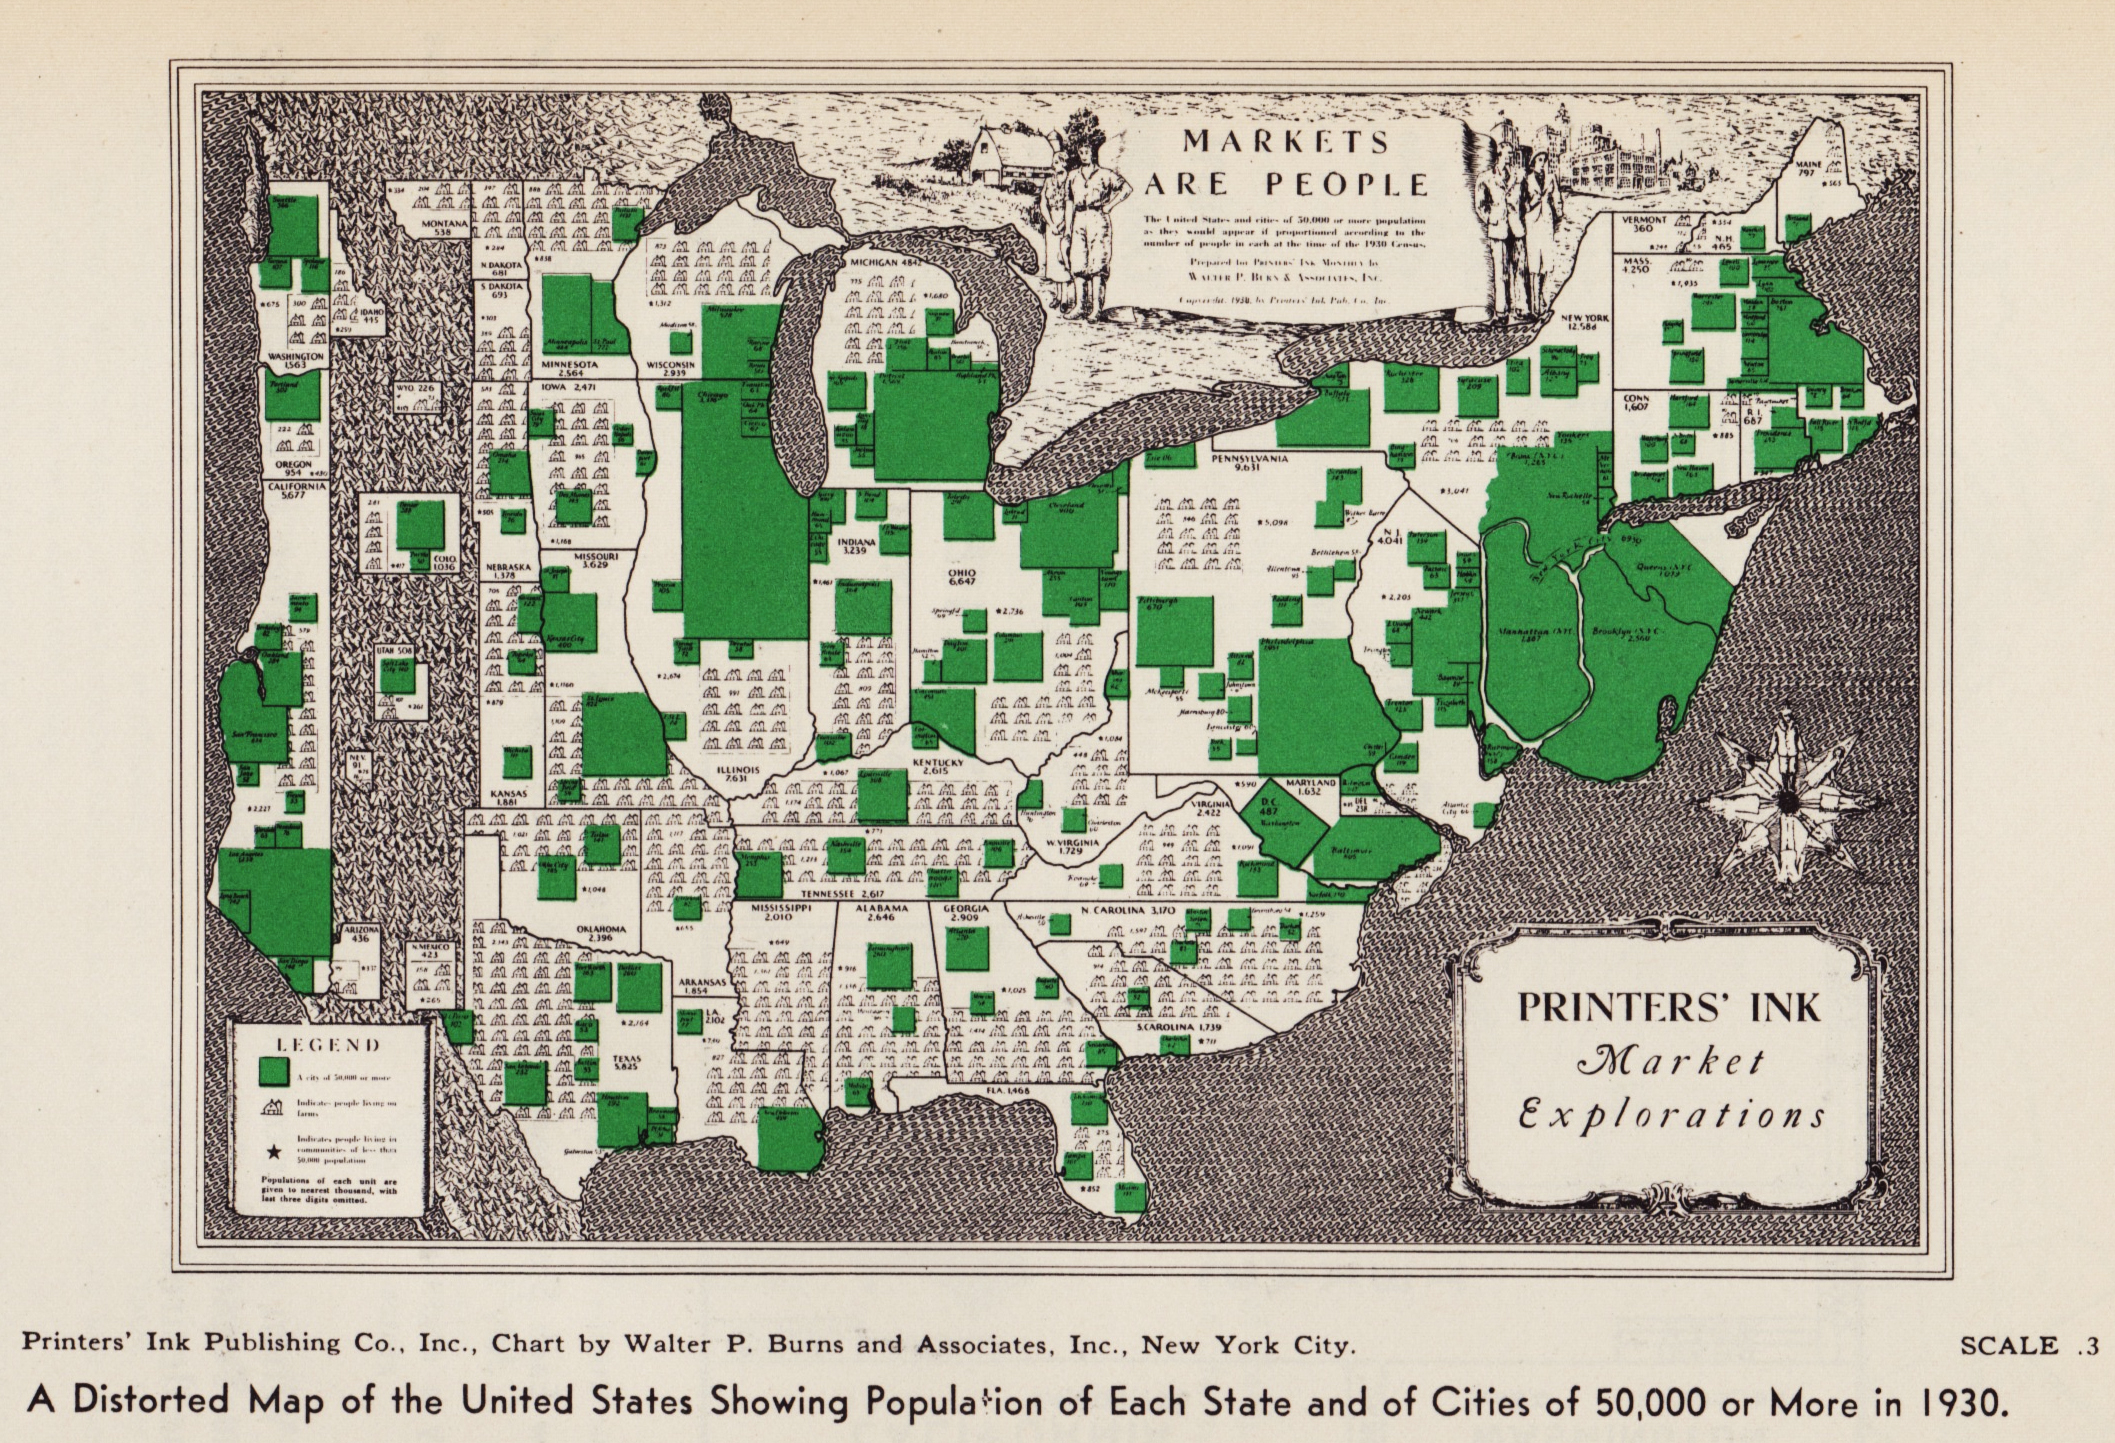 Vintage infographics: Visualizations of American potion ... on largest inland lake in michigan, all cities in michigan, shape of michigan, silver lake michigan, northern michigan, lower peninsula of michigan, allenton michigan, branch county michigan, lansing michigan, troy michigan, major cities in michigan, thumb of michigan, state parks upper peninsula michigan, ellsworth michigan, tawas point lighthouse michigan, wildlife of michigan, saginaw michigan, people of michigan, battle creek michigan, white lake michigan,